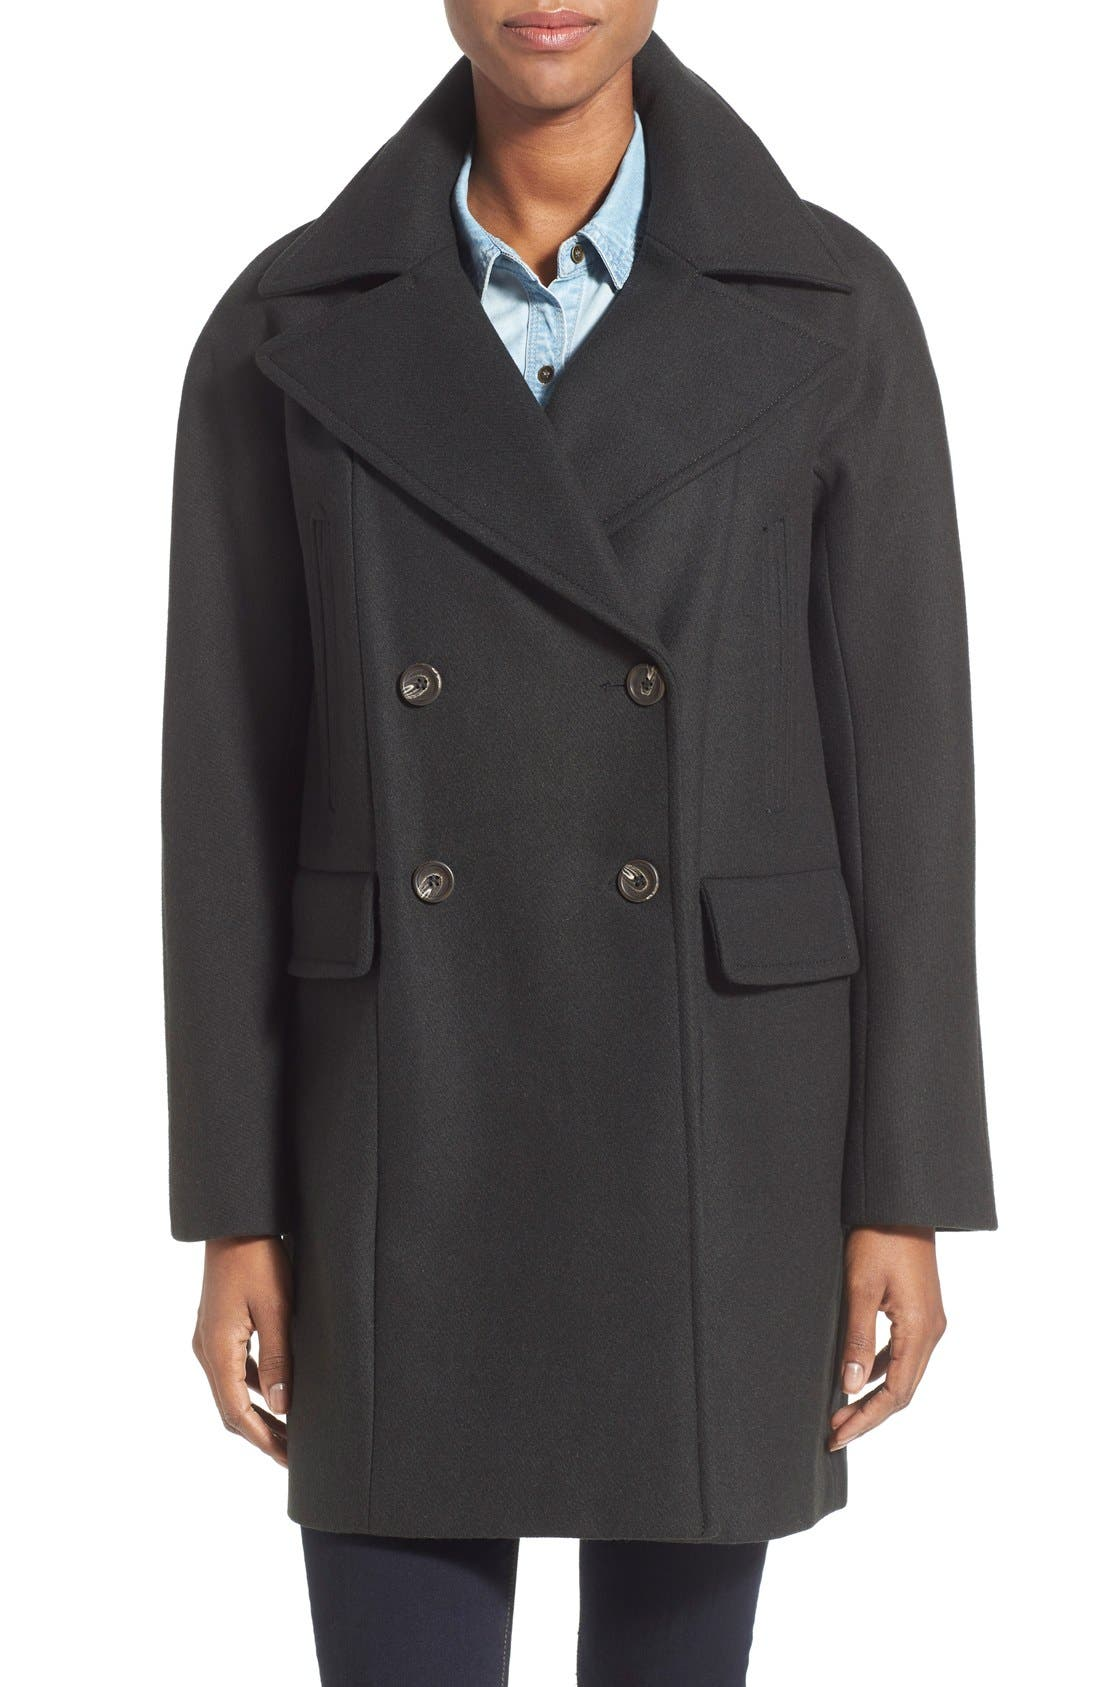 Alternate Image 1 Selected - Vince Camuto Double Breasted Peacoat